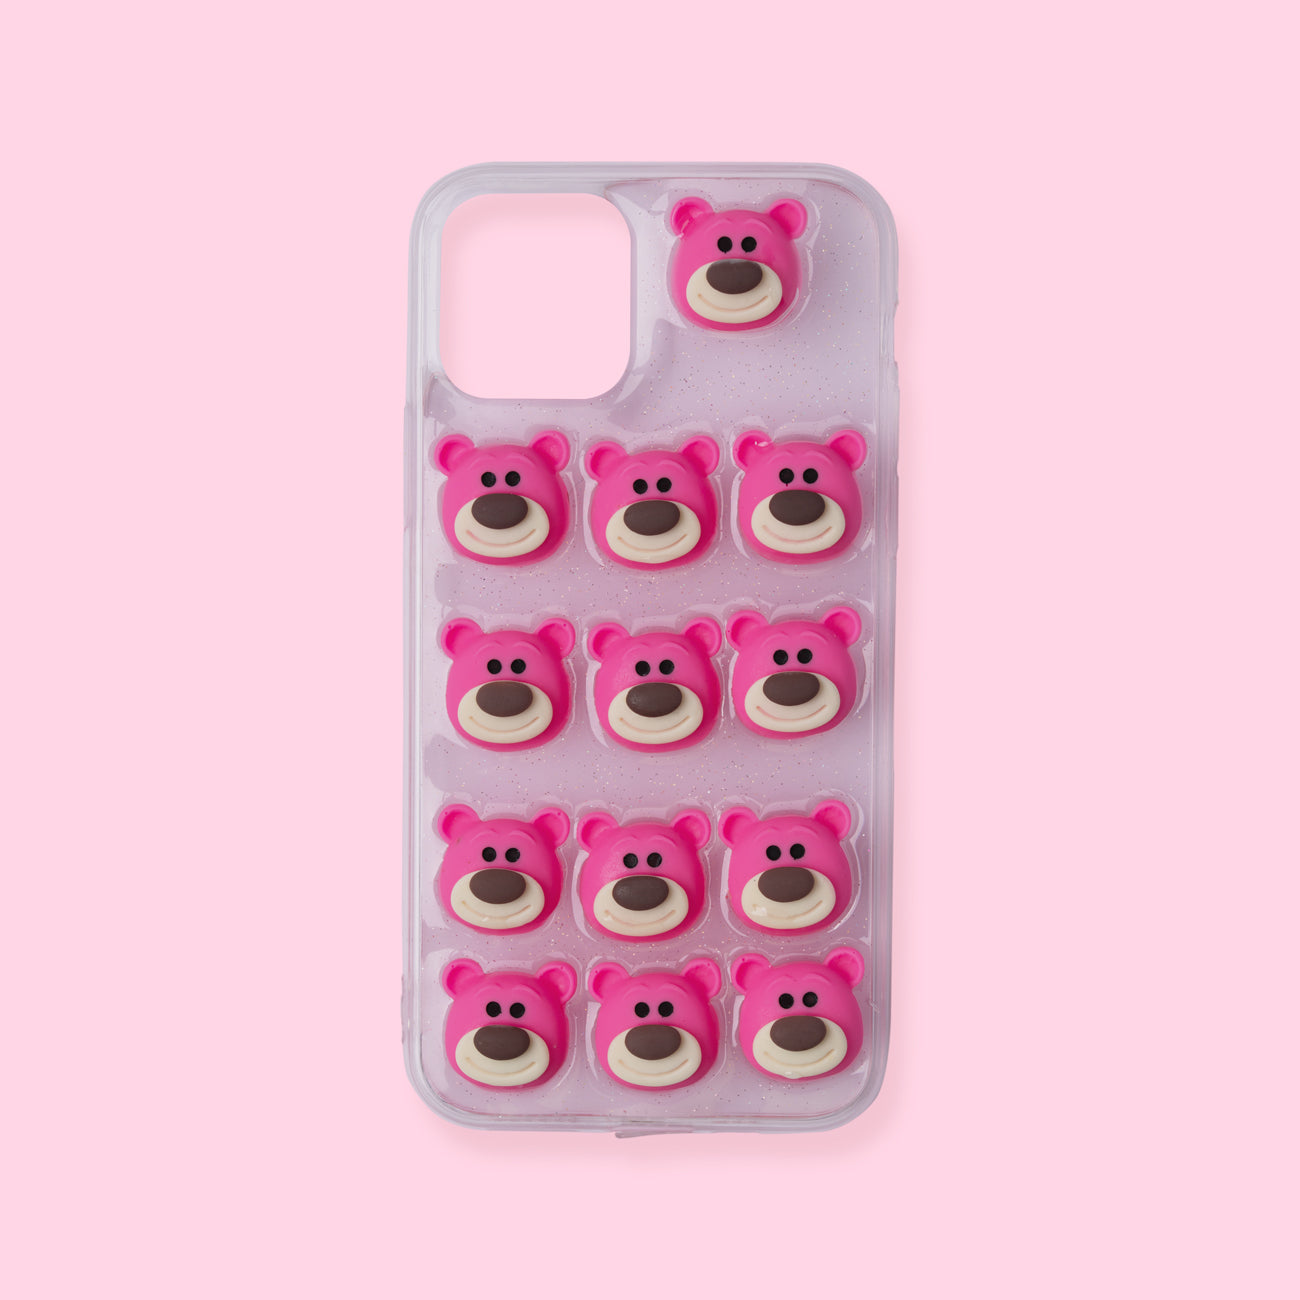 iPhone 11 Pro Case - 3D Bear - Pink